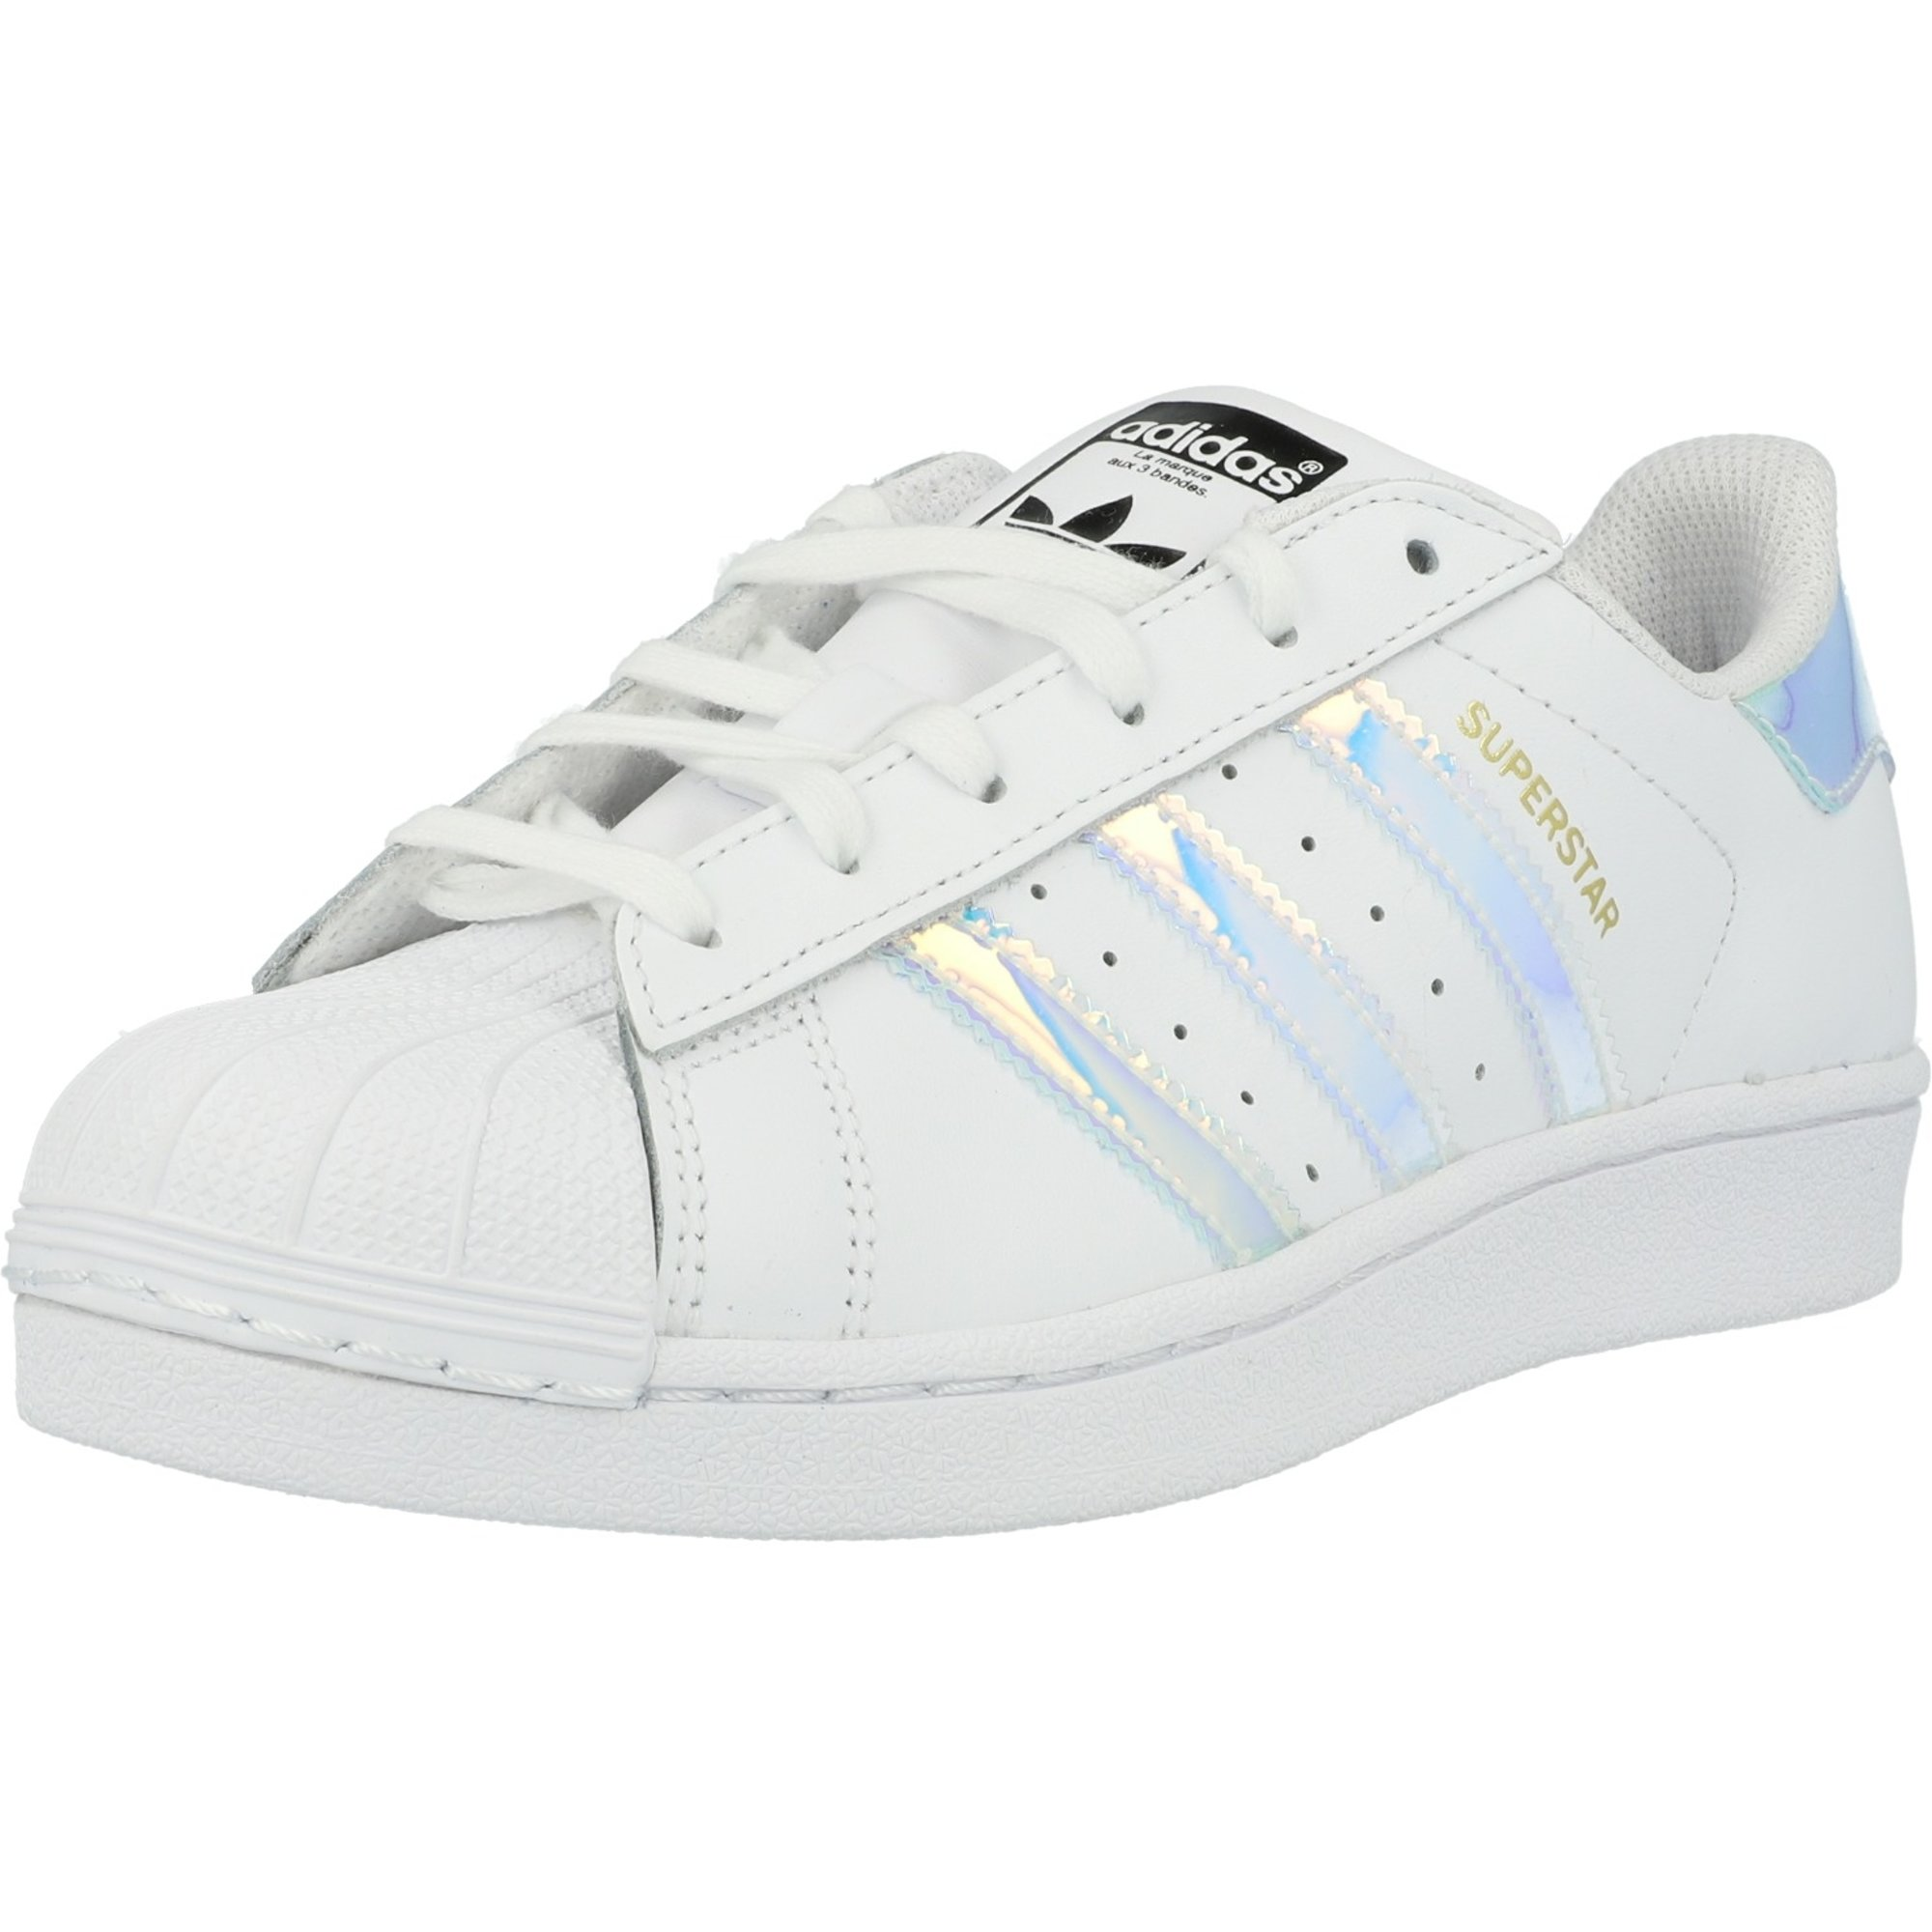 adidas Originals Superstar J White/Iridescent Leather Youth